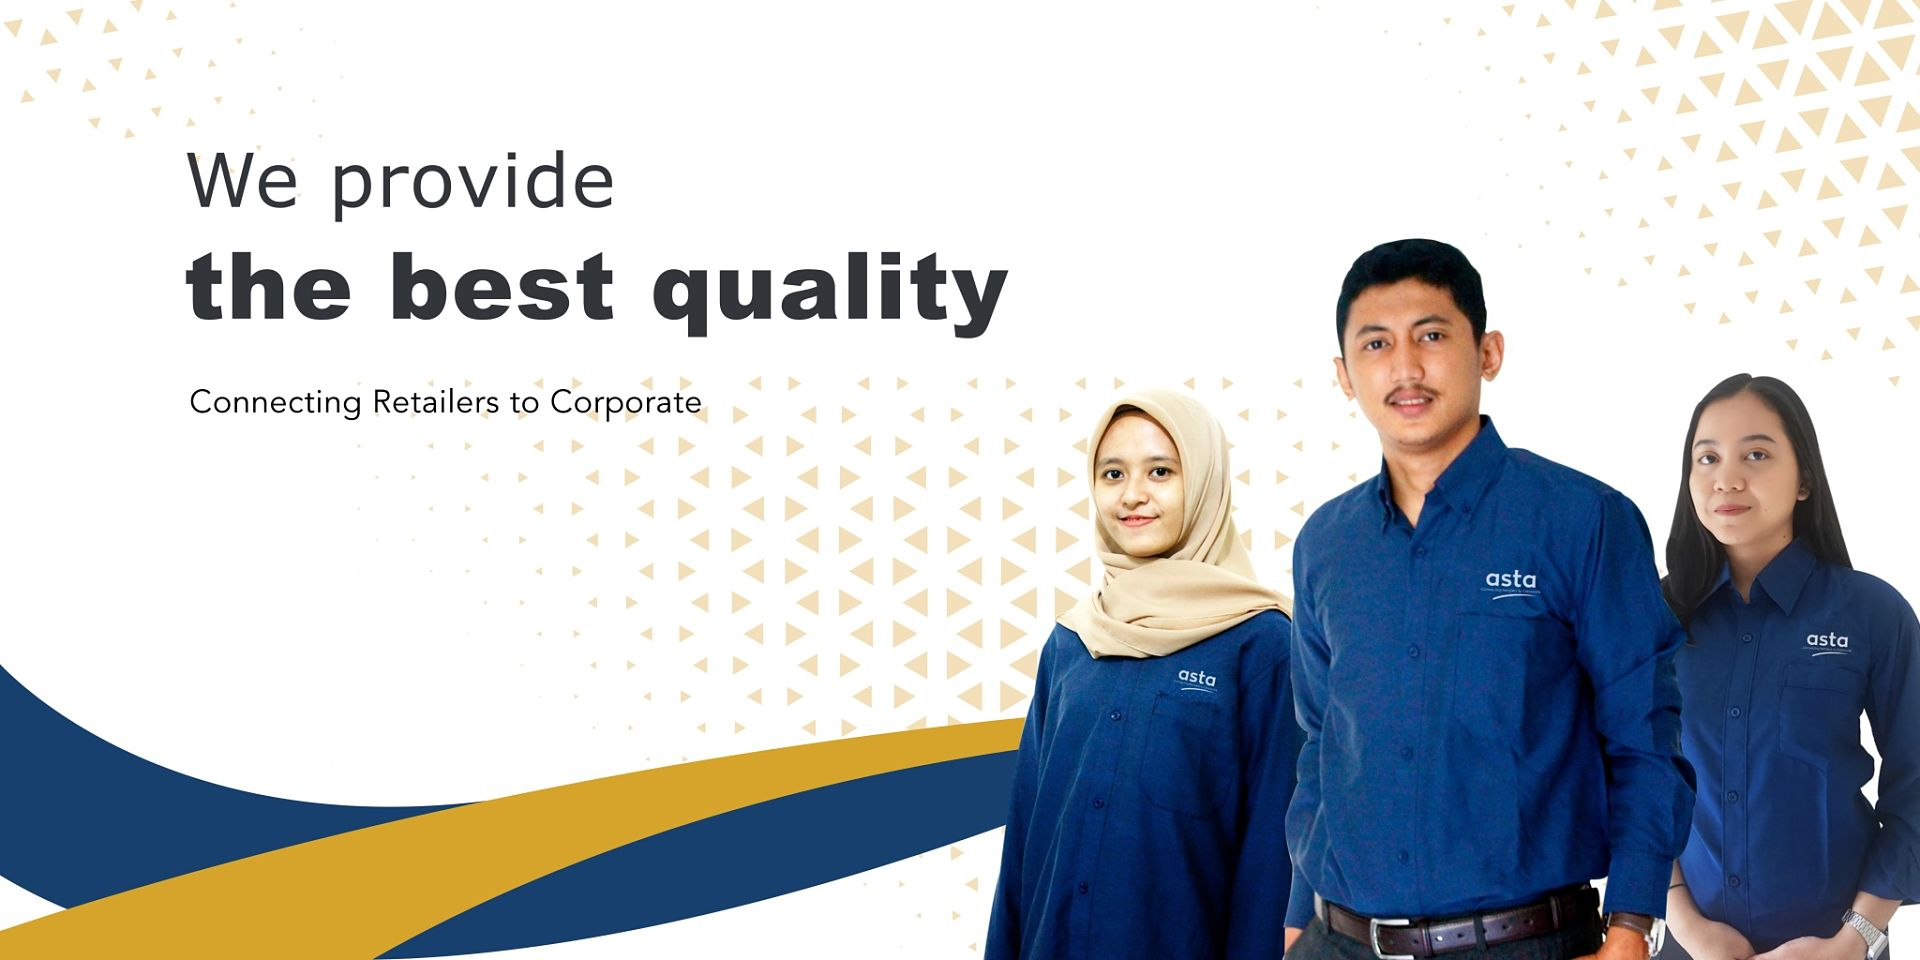 GTMetrix_FINAL-banner-We-provide-the-best-quality-Copy_opt_e1a07c4c75f72499ee8bcfd42d64edbb